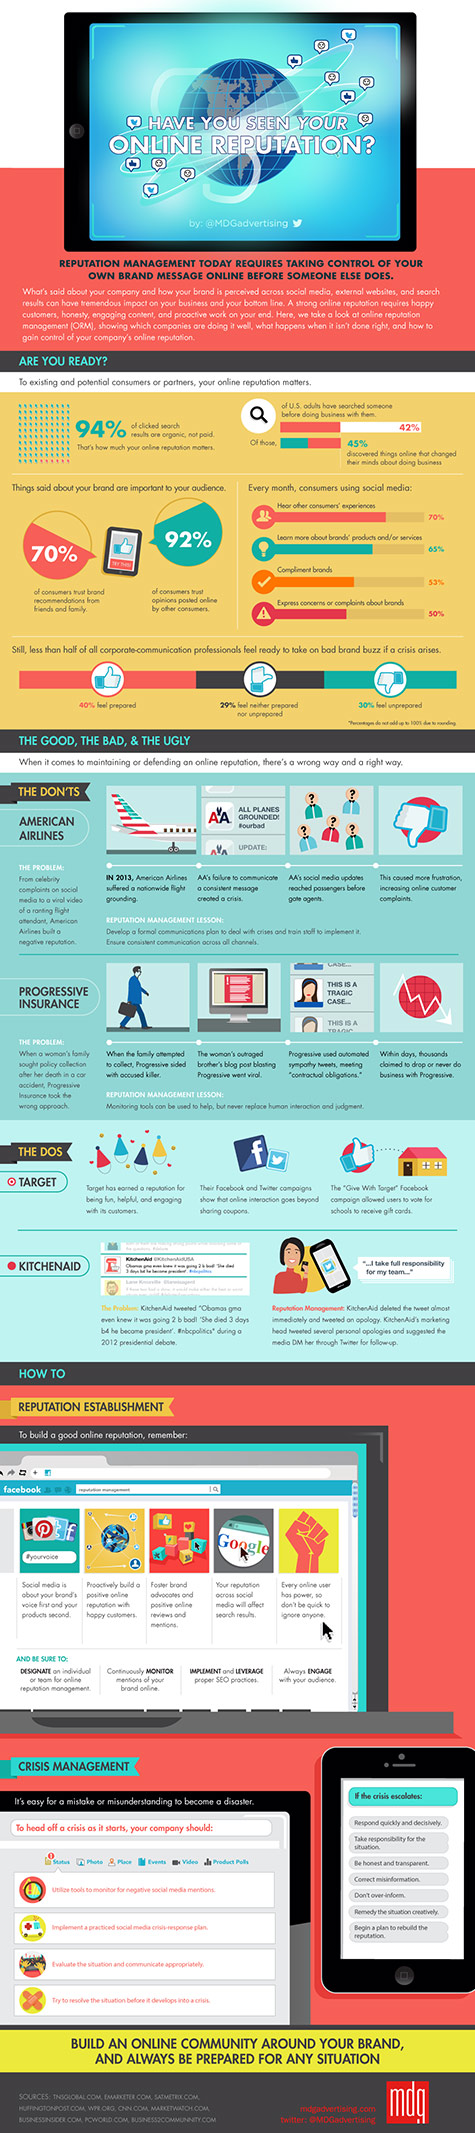 Have You Seen Your Online Reputation? [Infographic]